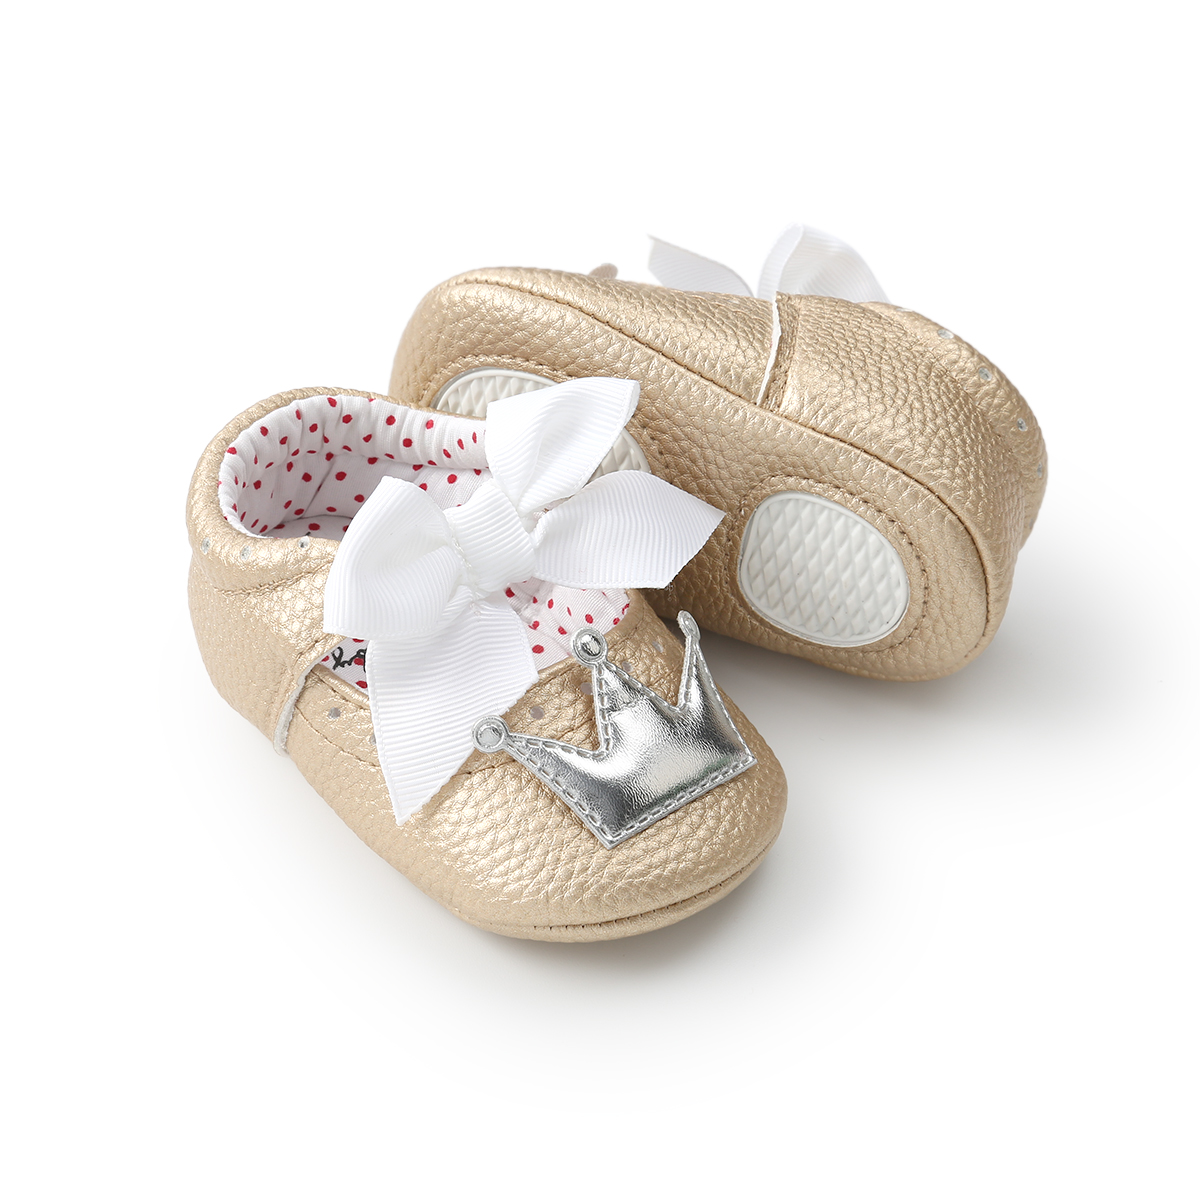 Wholesale Cute PU Leather crown bowknot princess dress party toddler baby girl shoes